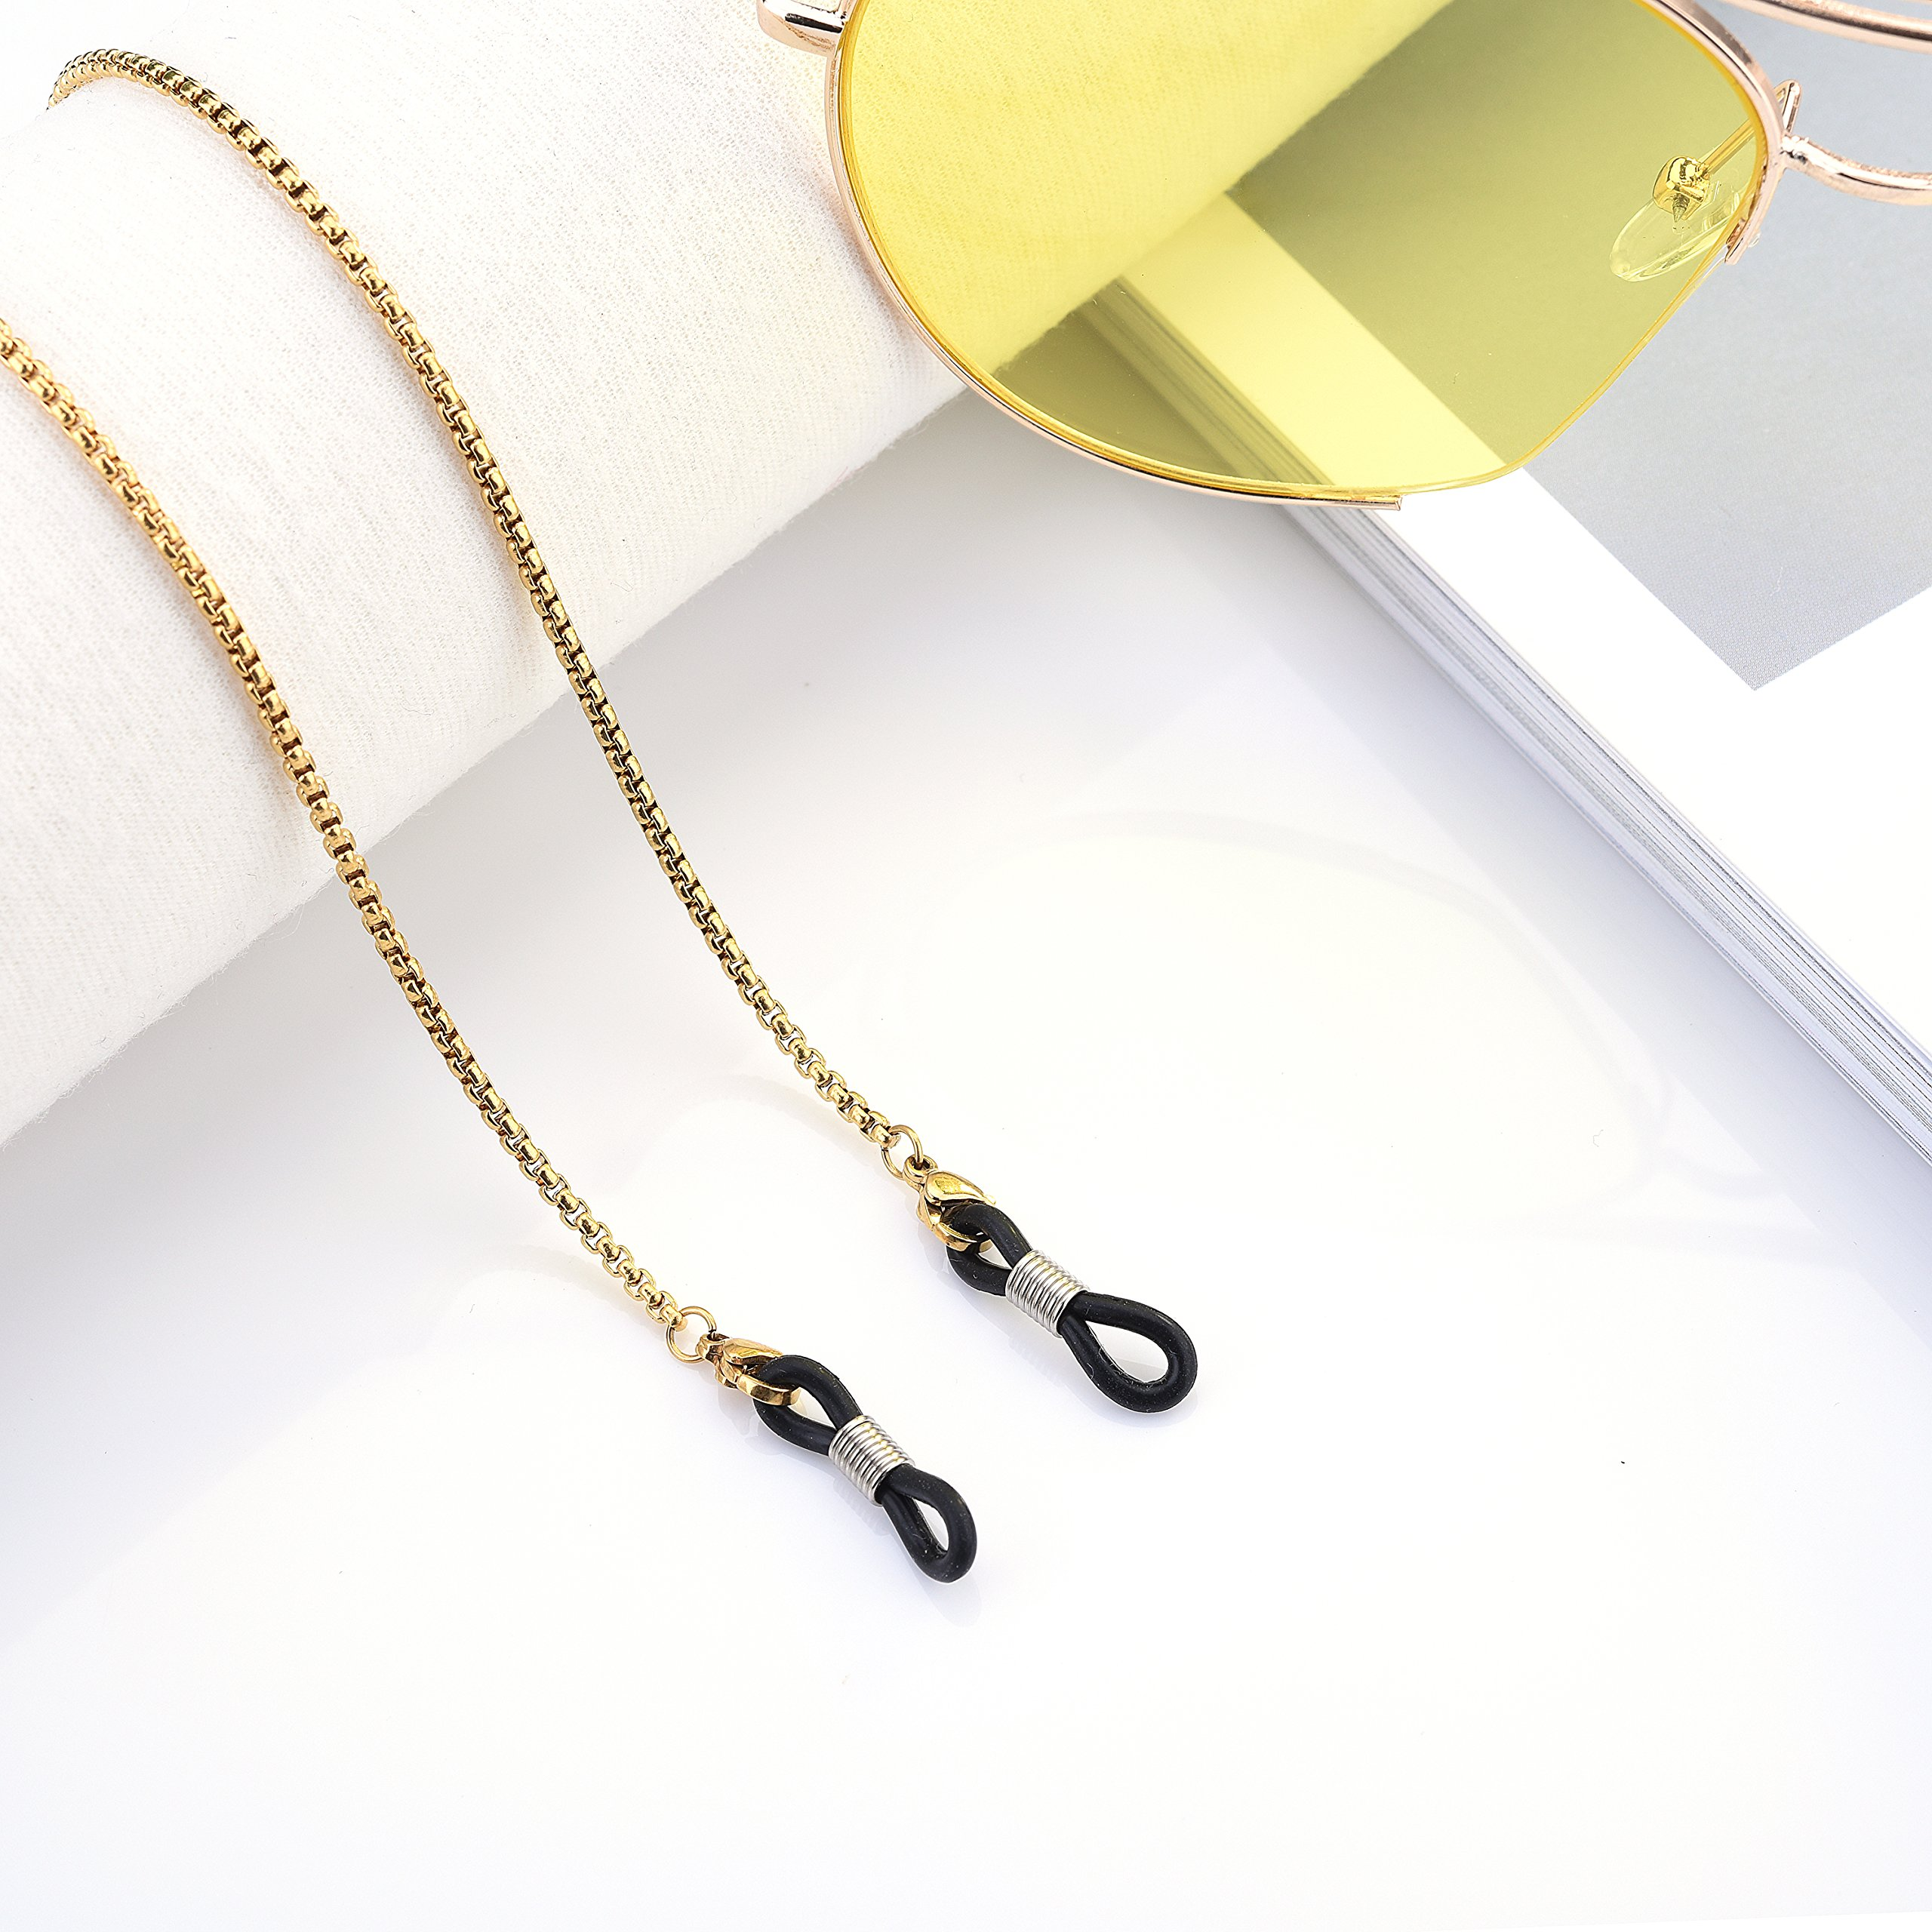 e37d3fc72b2 Eyeglass Chain - Kalevel Stainless Steel Sunglass Strap Eyeglass Strap  Holder (Gold)